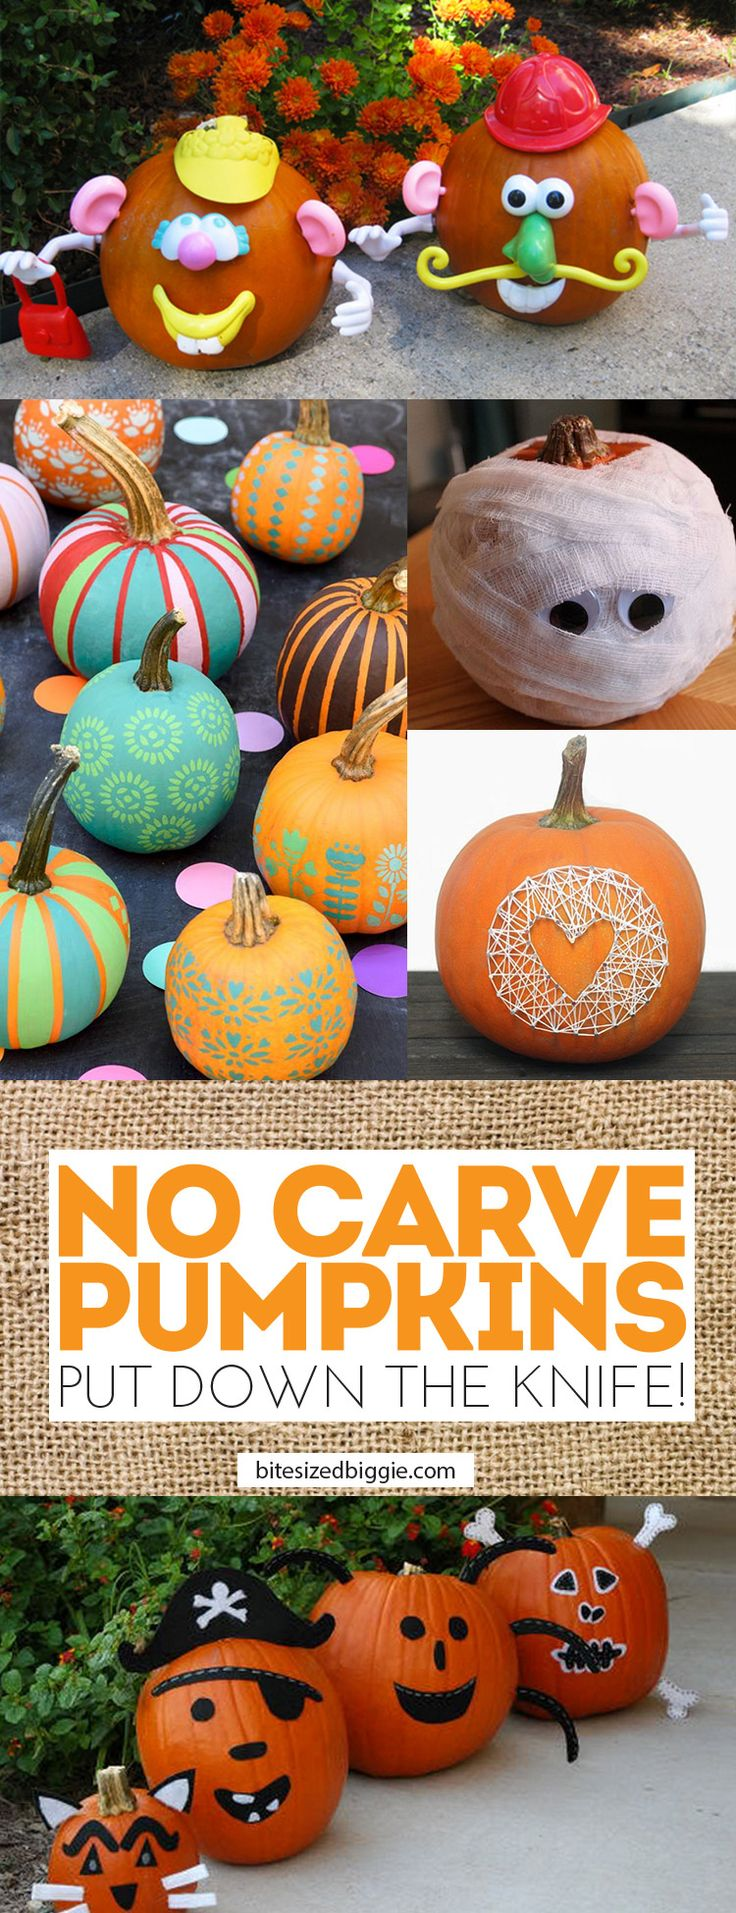 Put Down That Knife! 14 Awesome No Carve Pumpkin Ideas!